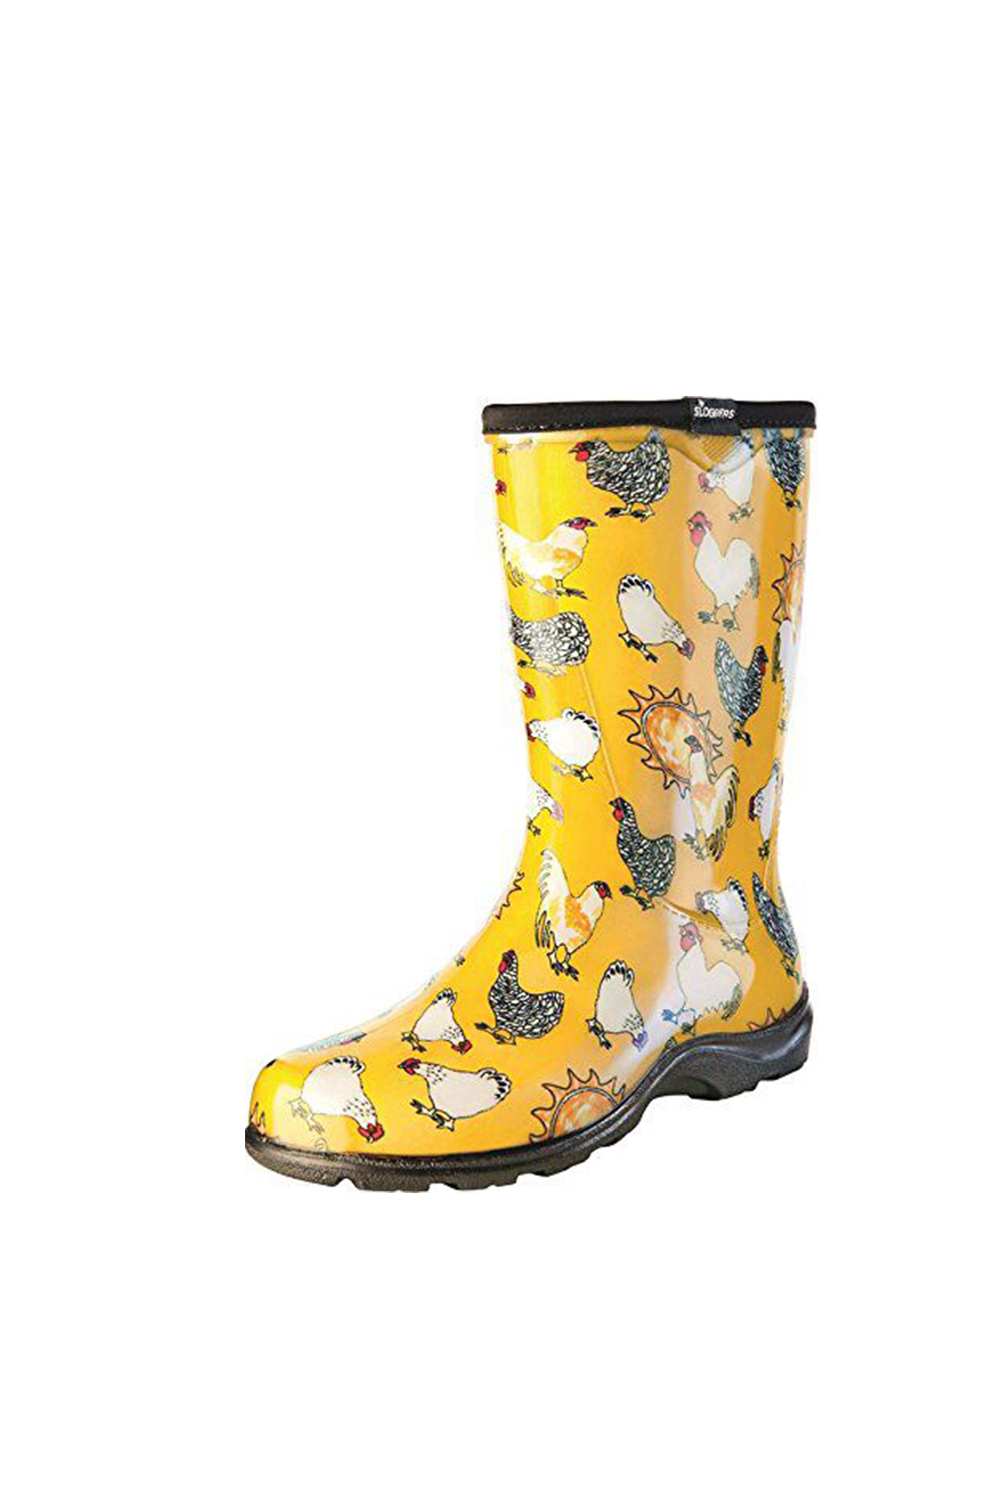 Sloggers Waterproof Rain and Garden Boot